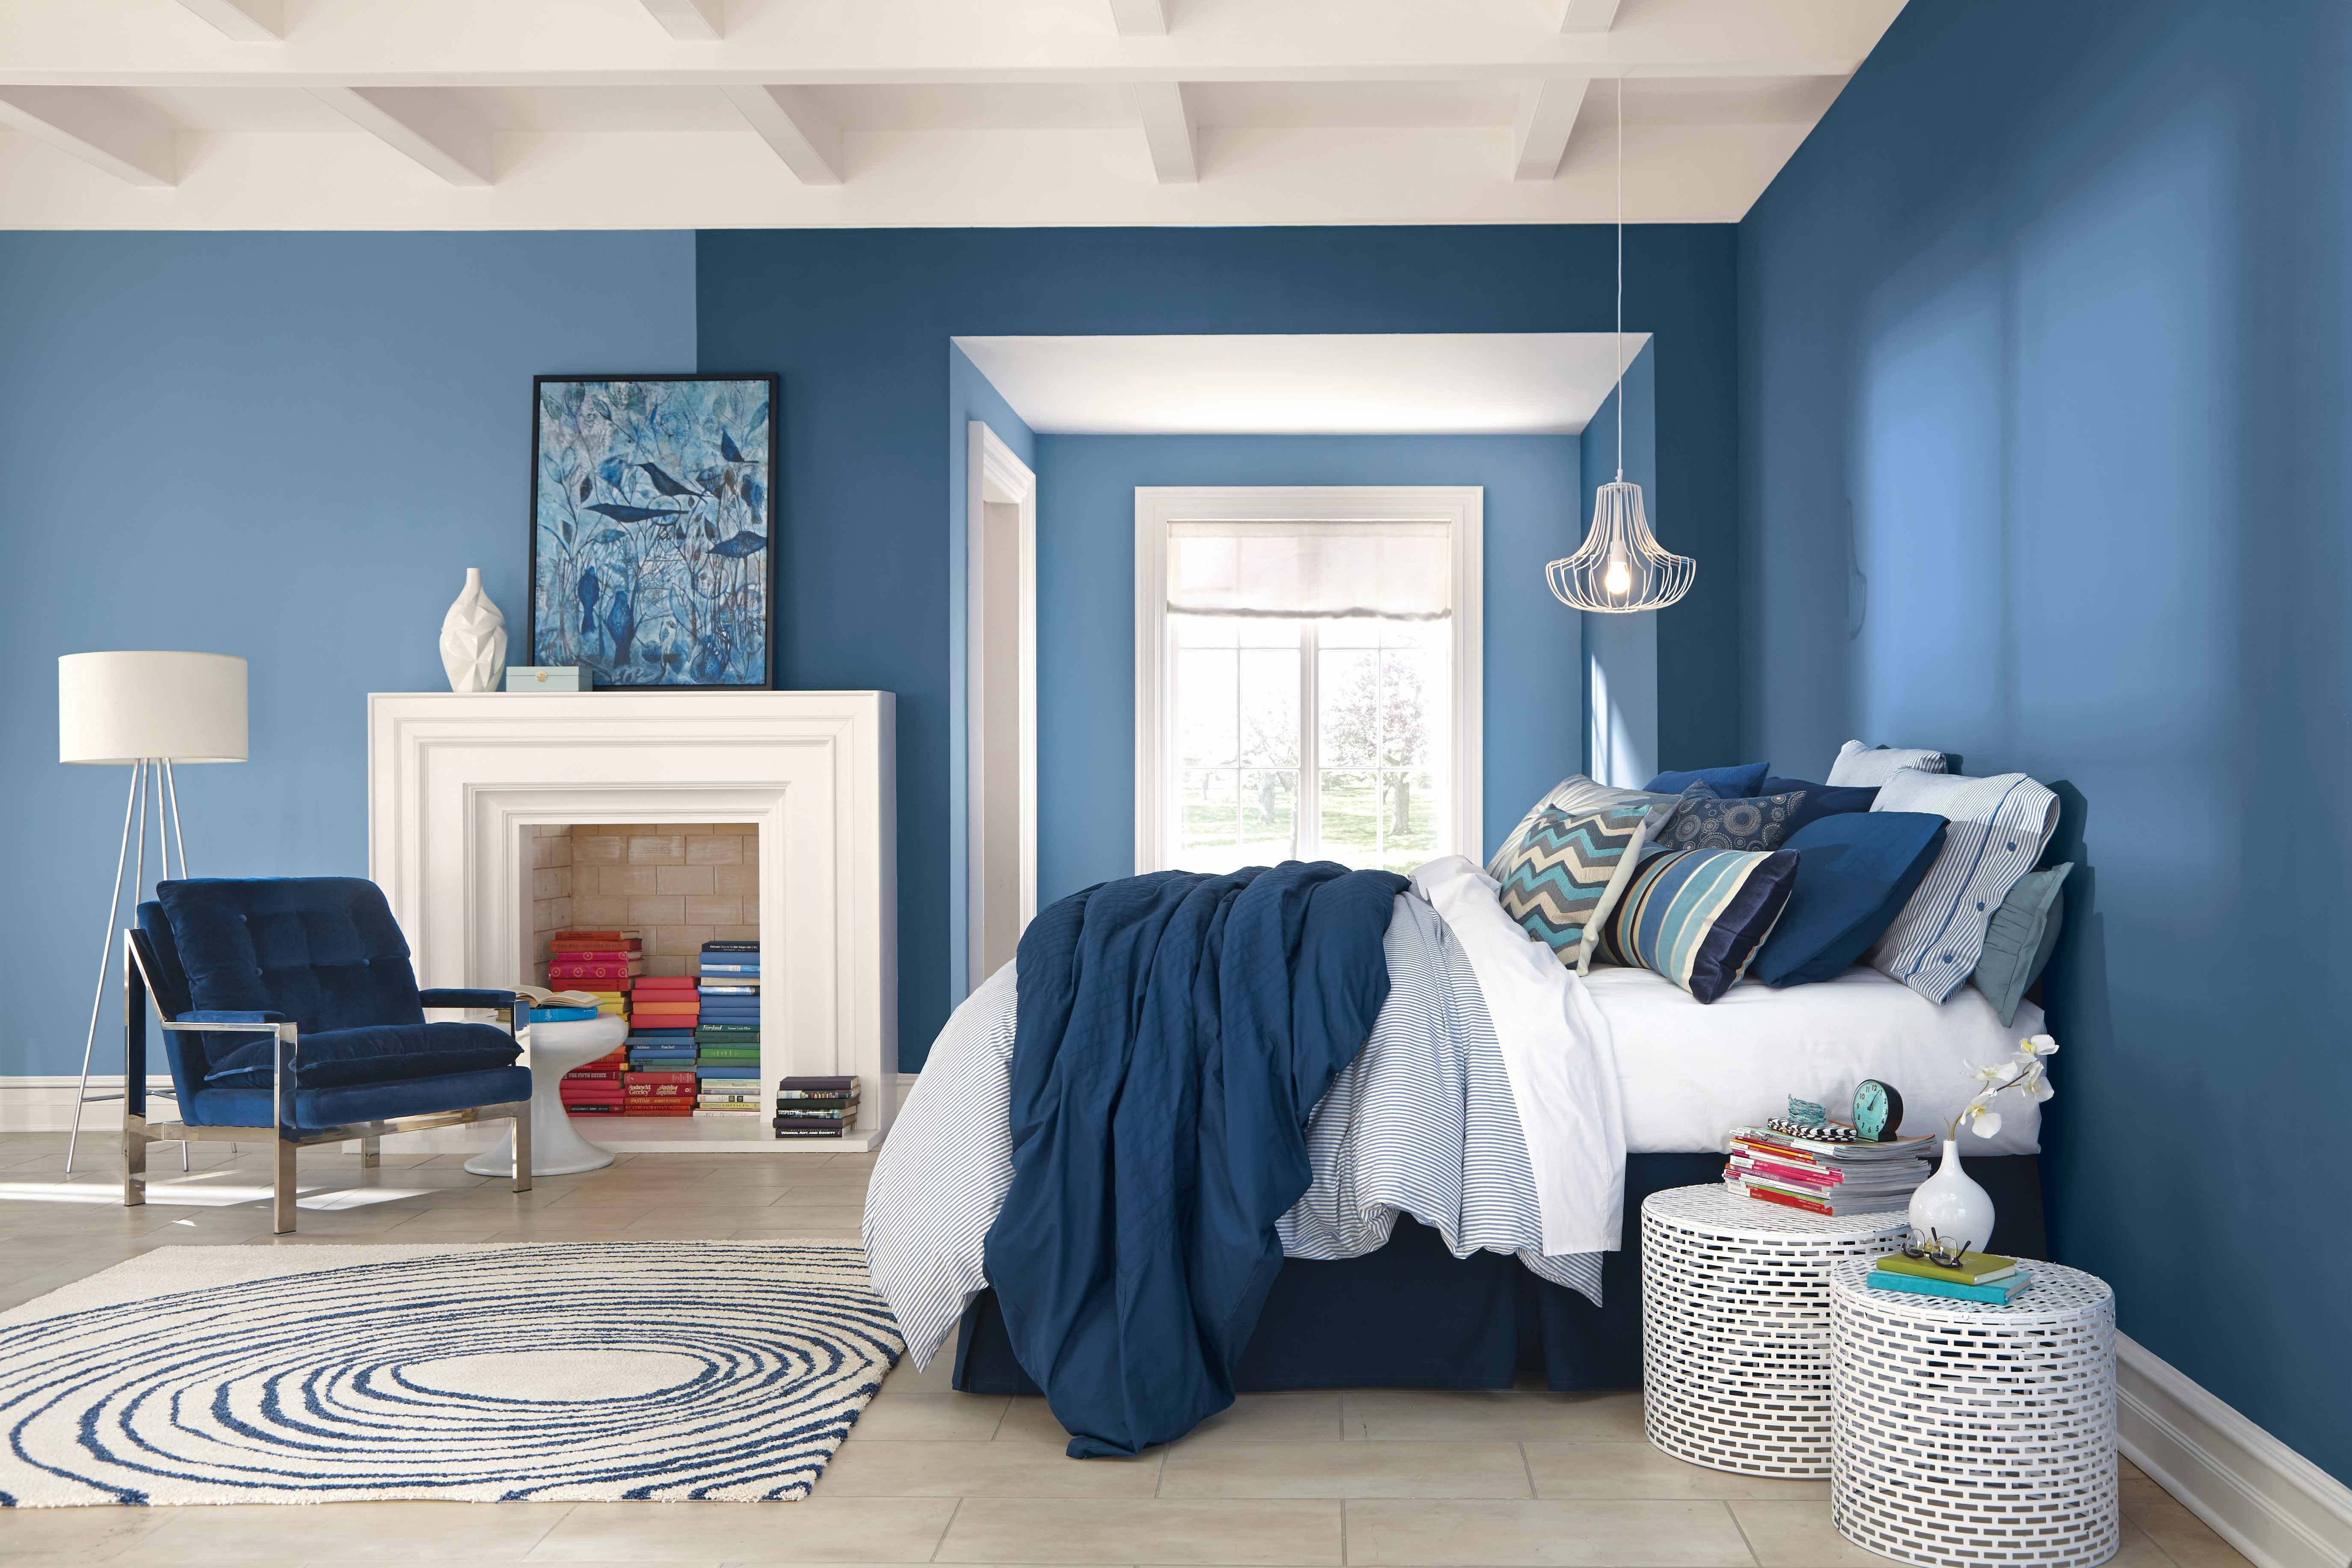 7 Ways to Make a Bold Palette Work in a Small Space - Trulia\'s Blog ...